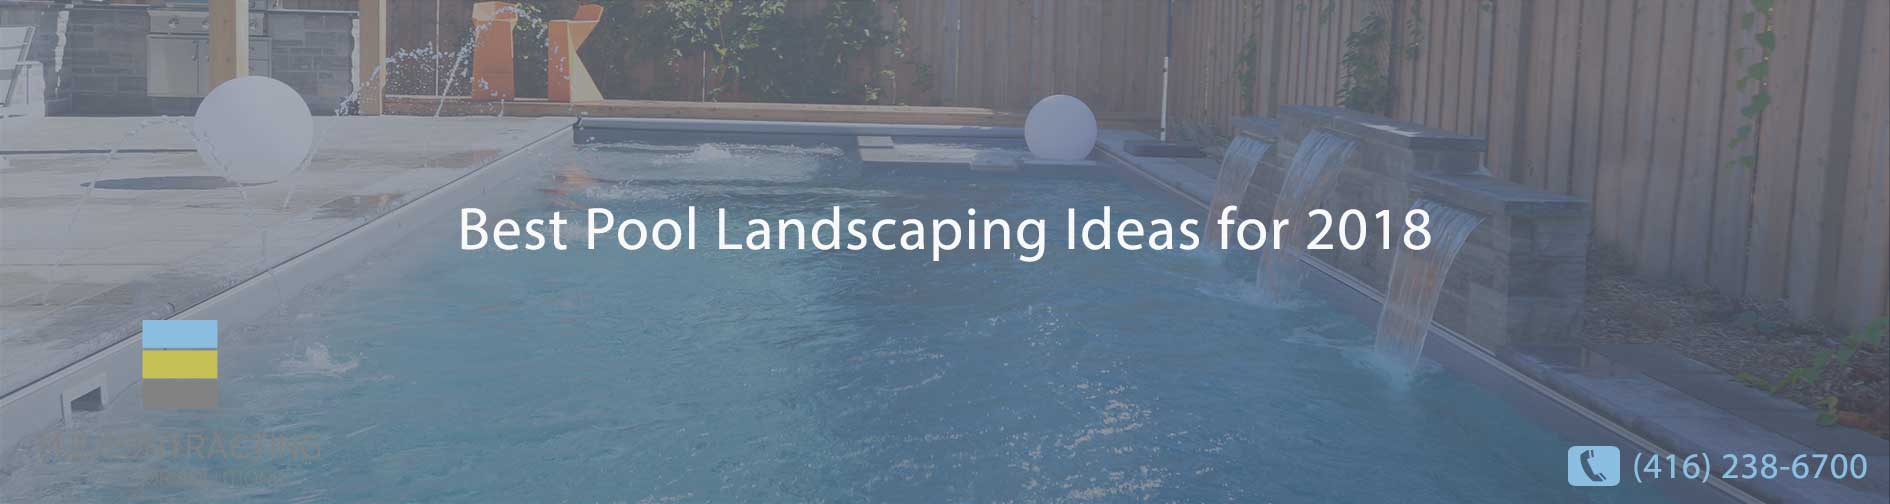 Best Pool Landscaping Ideas for 2018